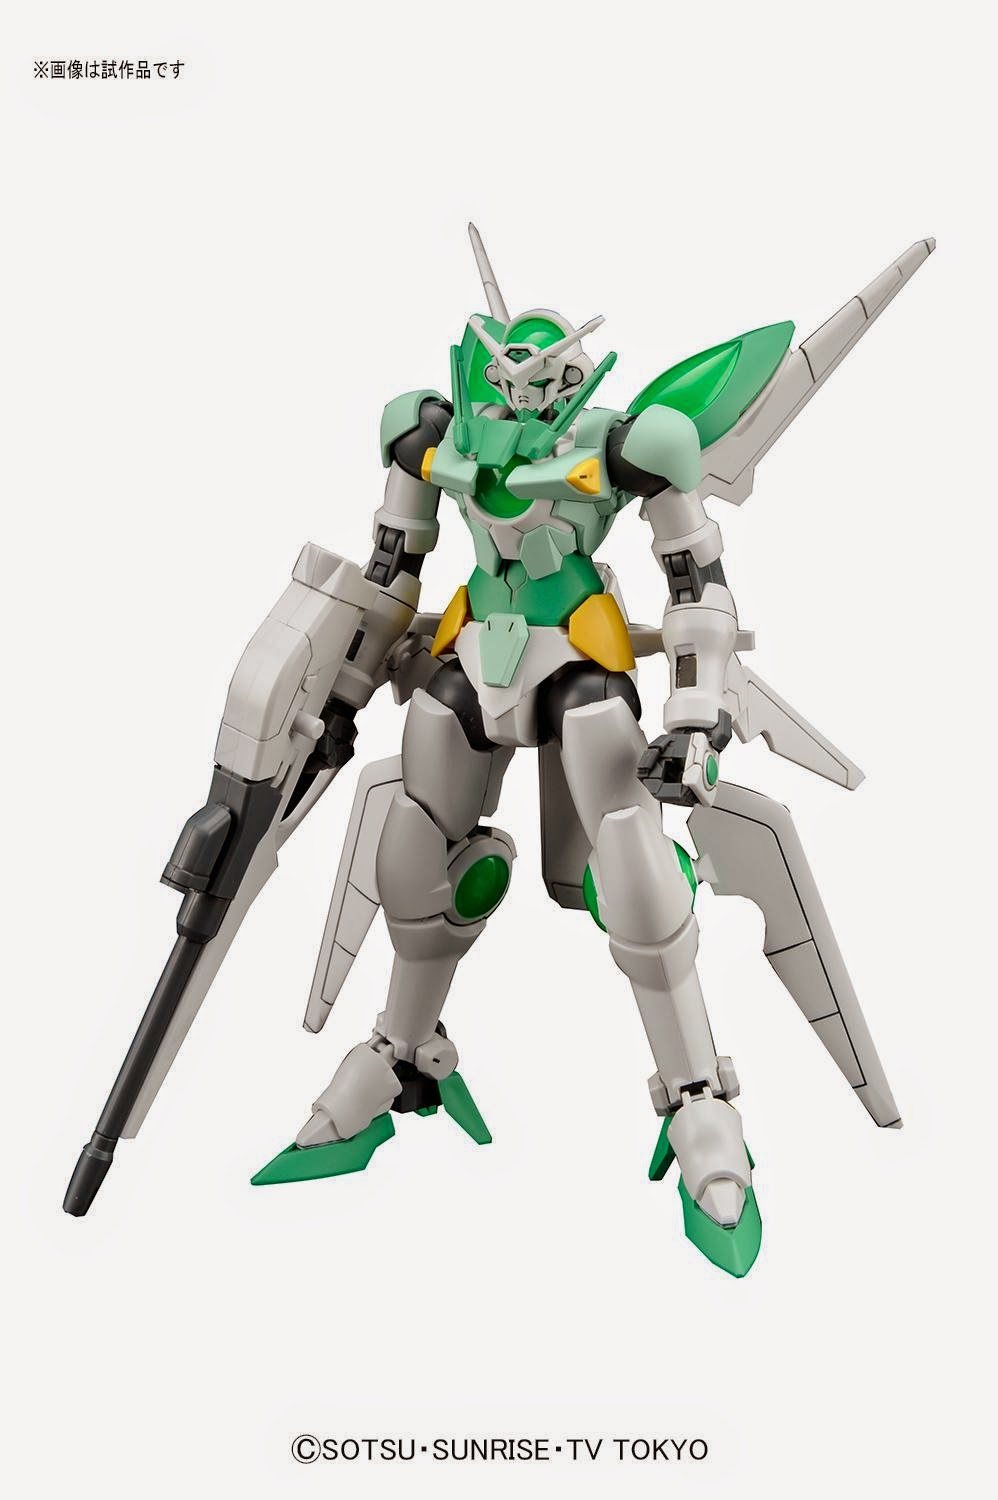 Gundam portent kijima shia unit gundam for Portent definition